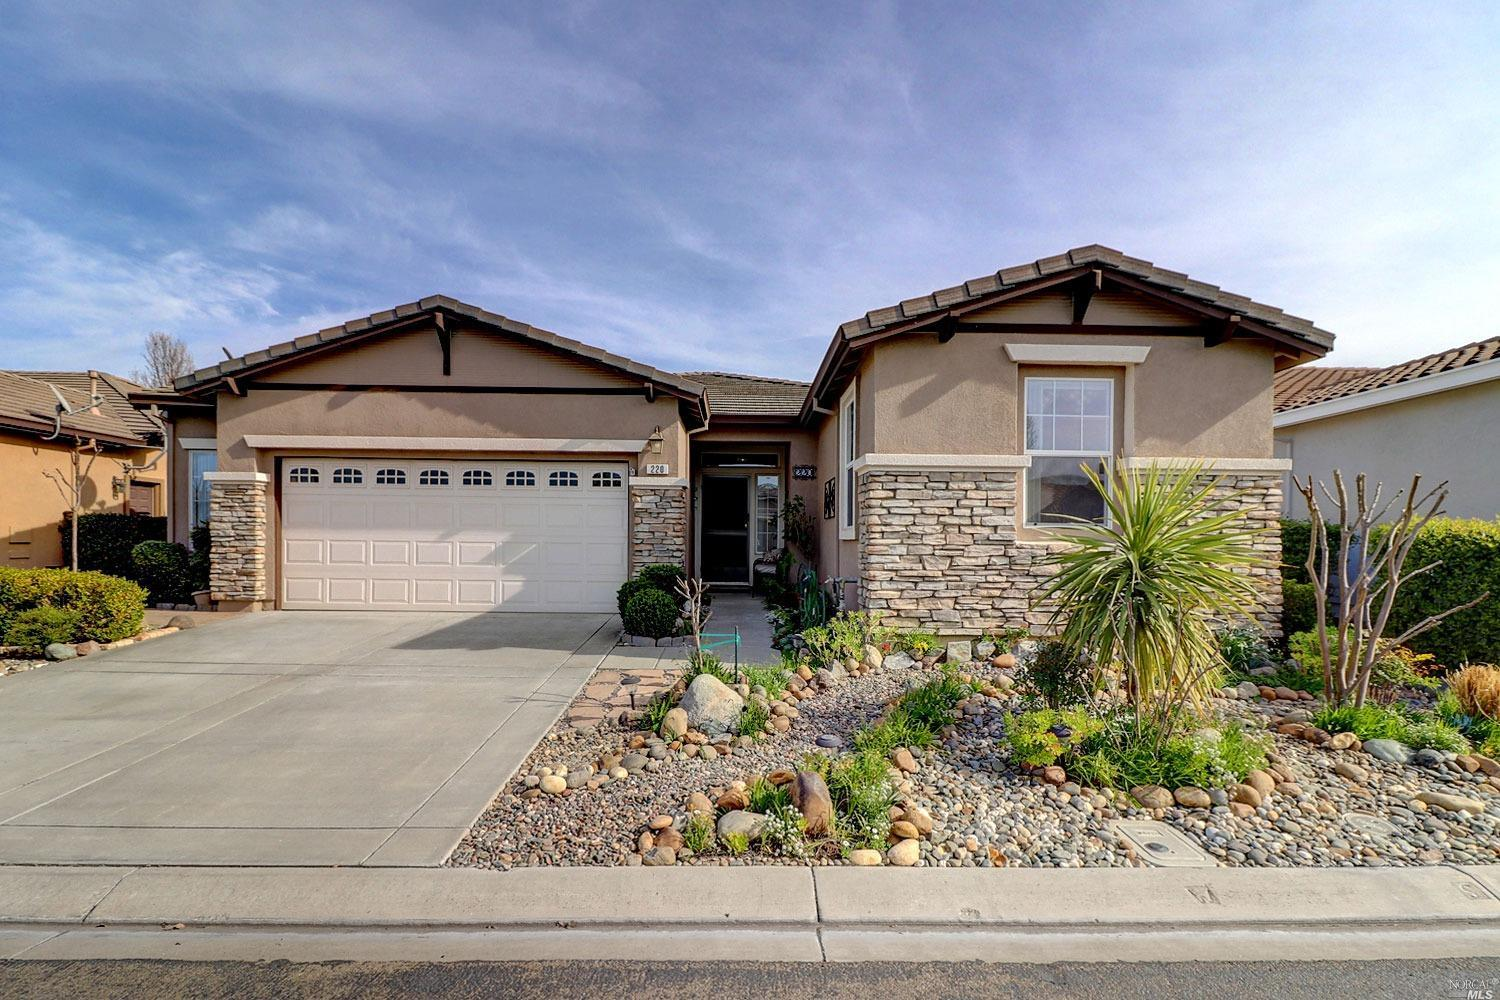 This remarkable Hillsborough model on a spectacularly landscaped lot offers bright and delightful in